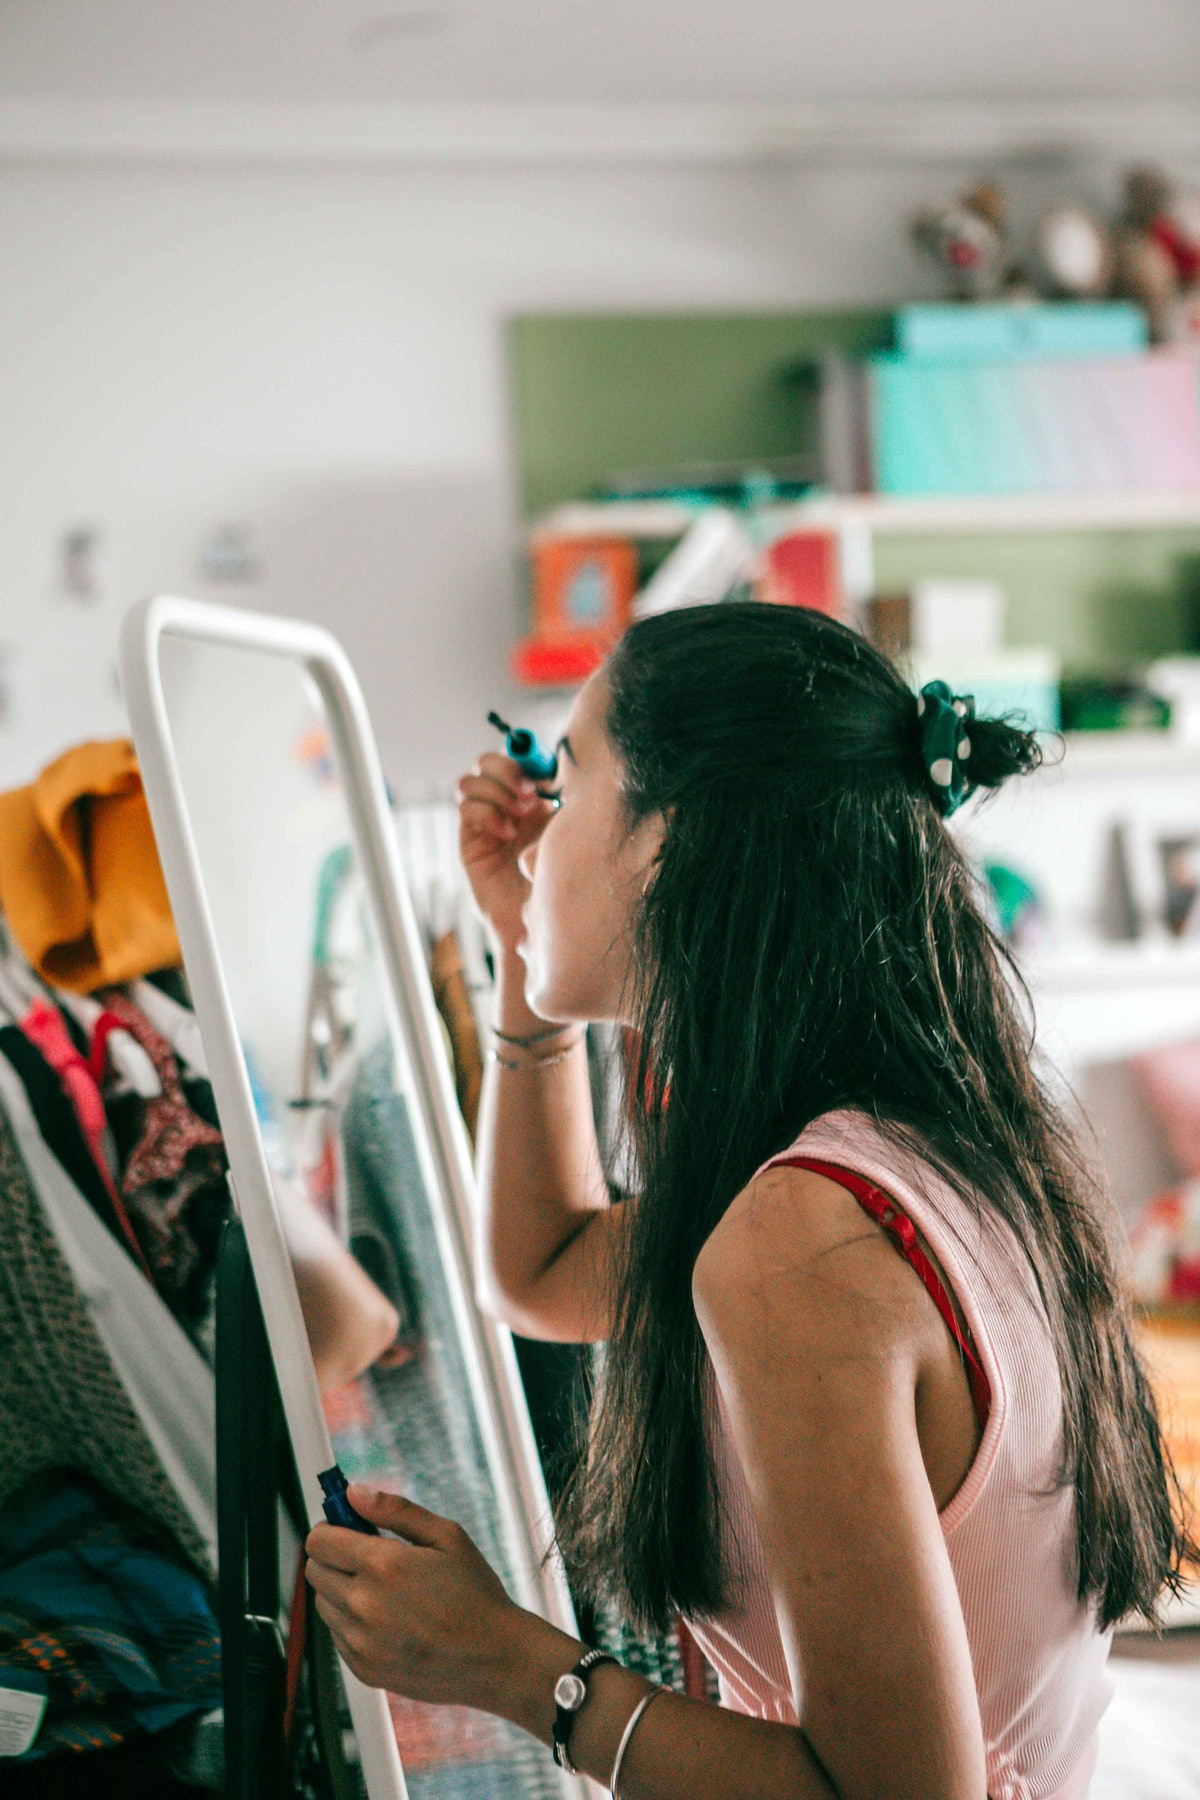 a young woman sitting in front of her bedroom mirror, learning how to apply makeup